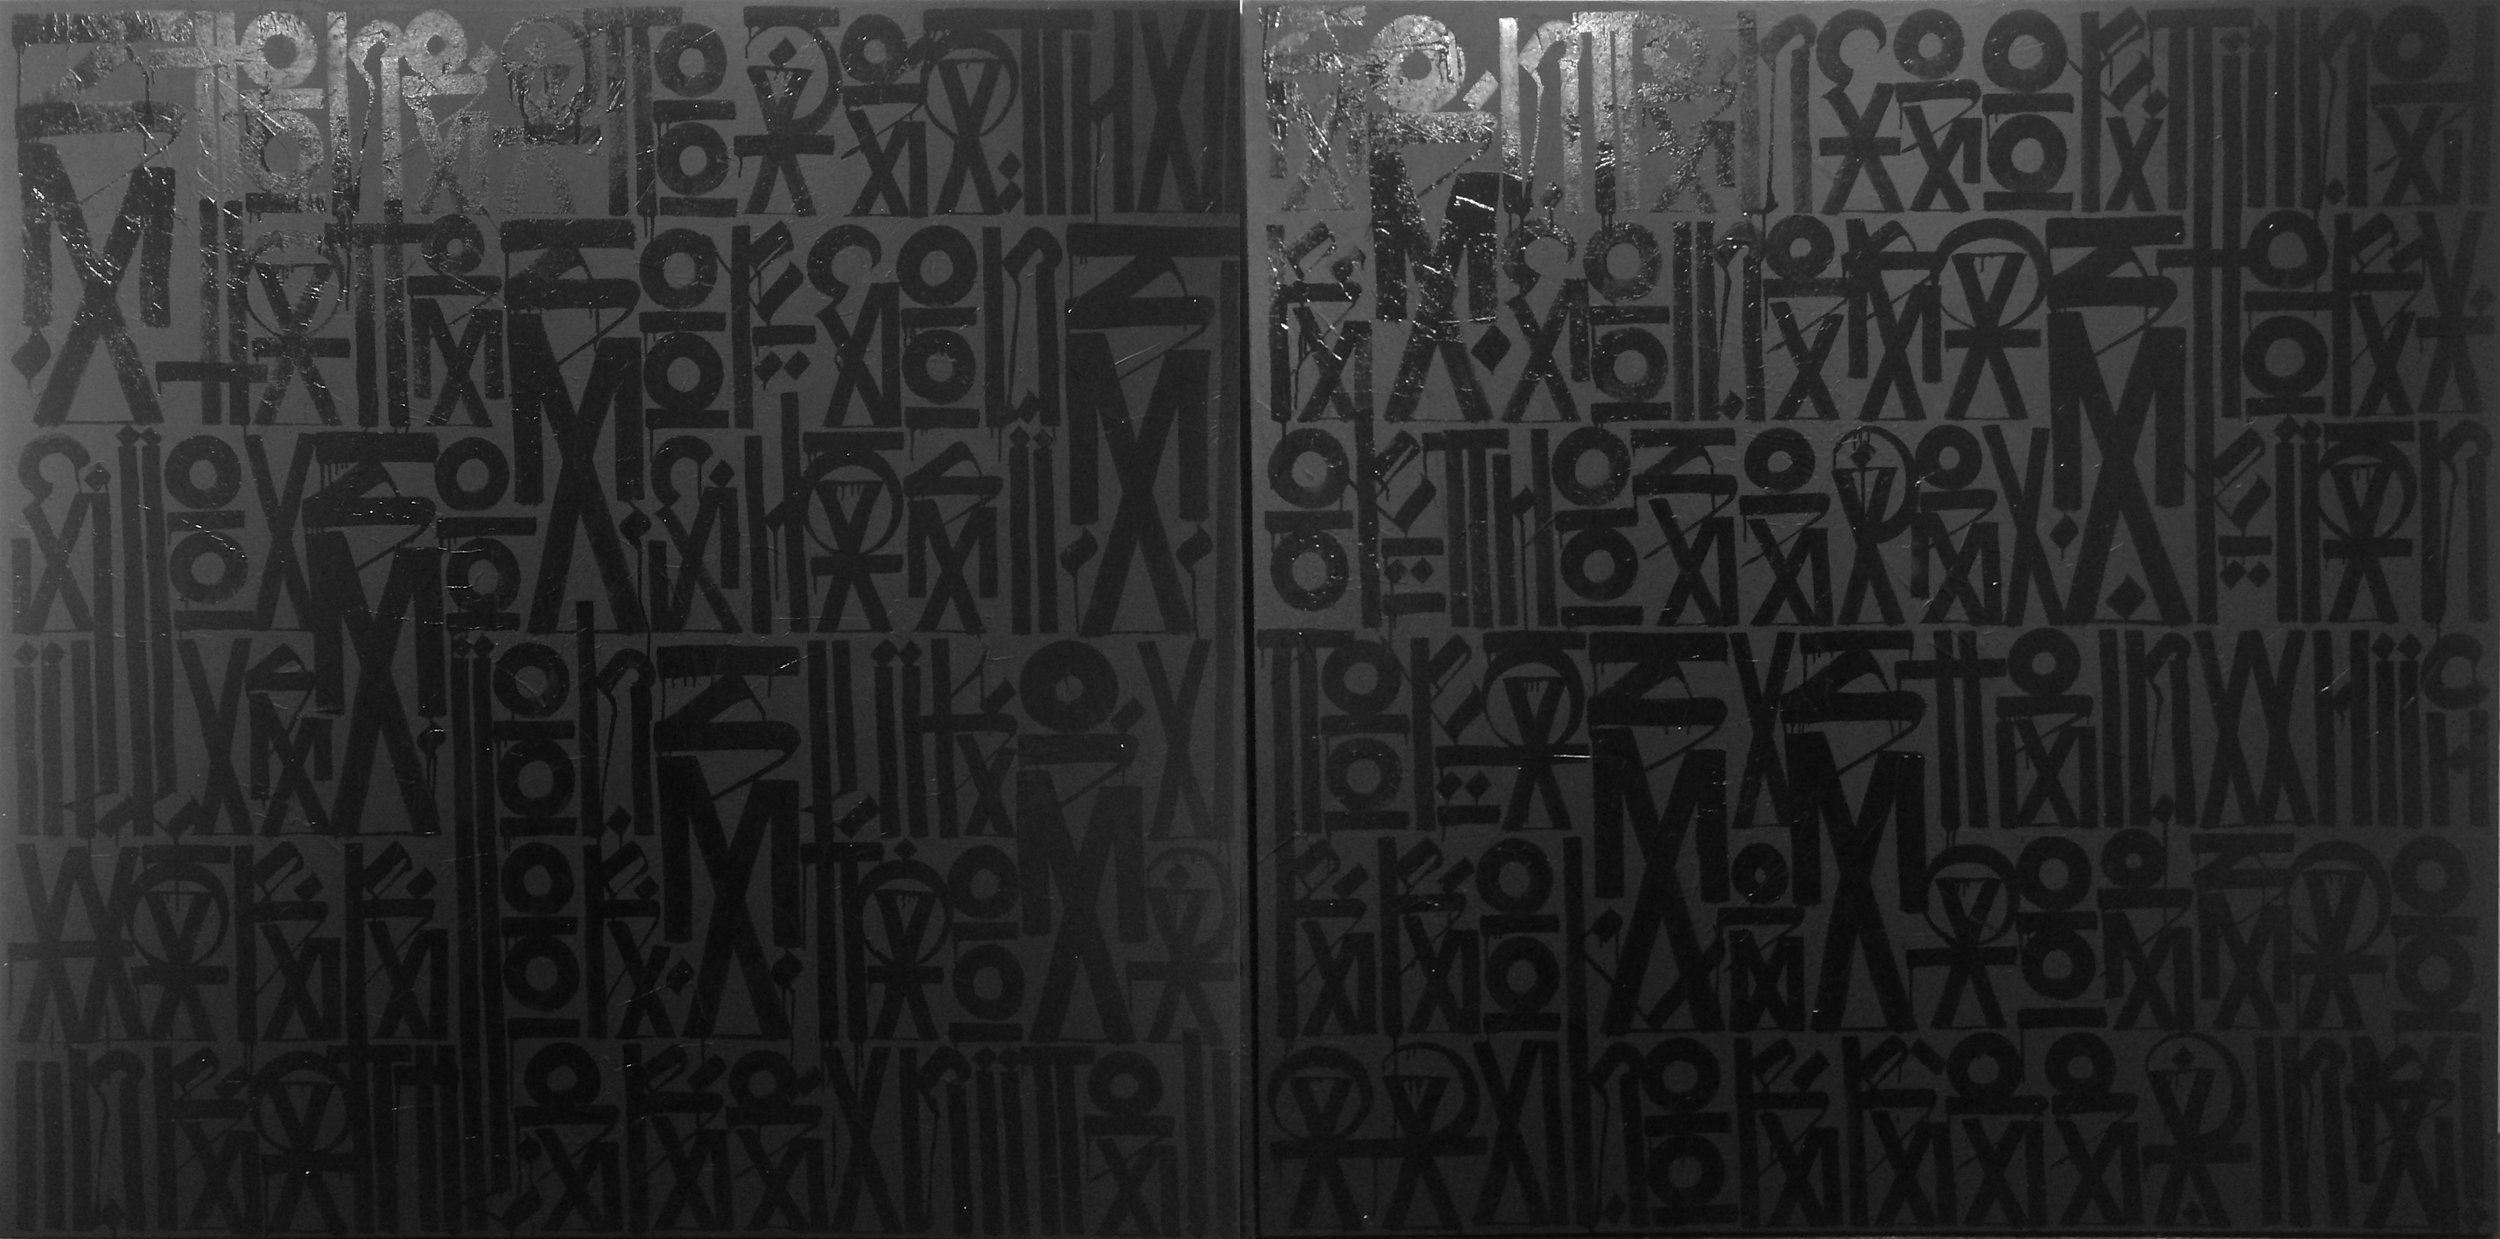 RETNA / Stoned To Death - State Of Conscious - Change Illusions - Like A Warrior - Staged In Battle - Reunited / 2010 / Acrylic and enamel on canvas (2 panels) / 72 x 144 inches